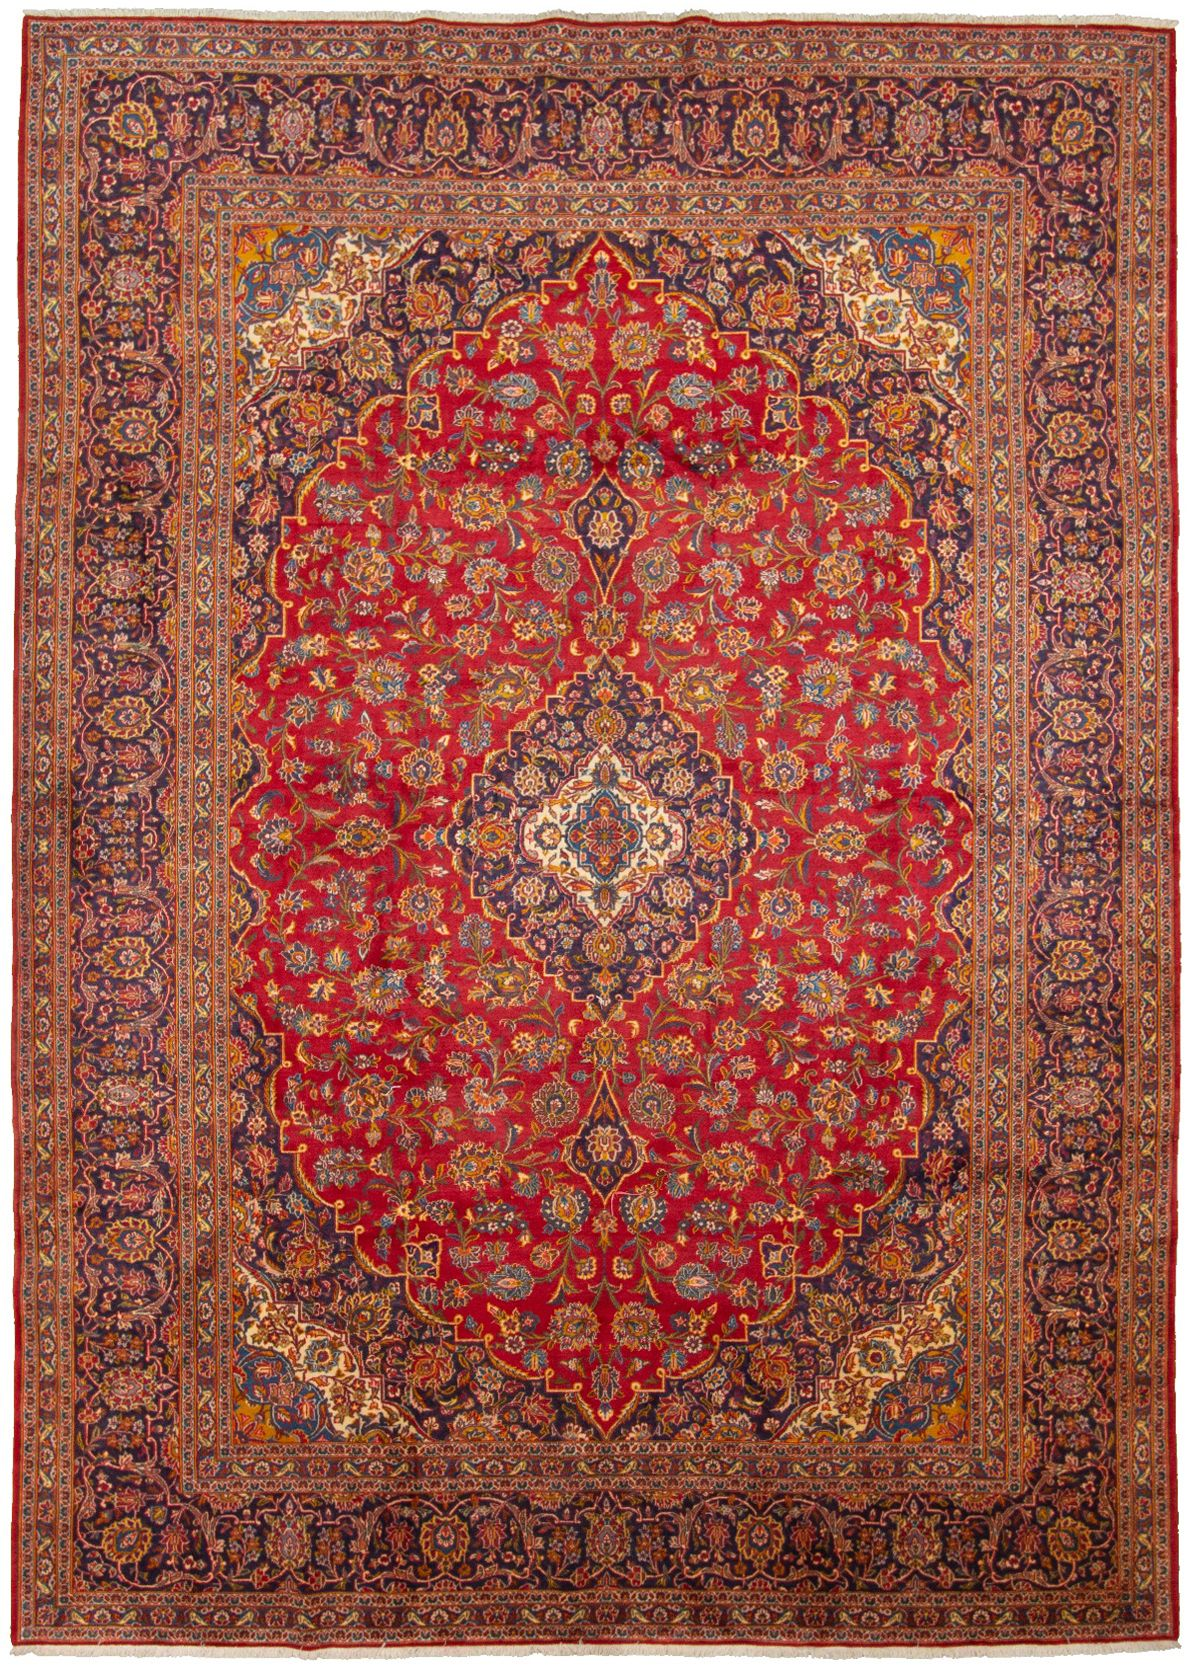 """Hand-knotted Kashan  Wool Rug 9'10"""" x 13'9"""" Size: 9'10"""" x 13'9"""""""